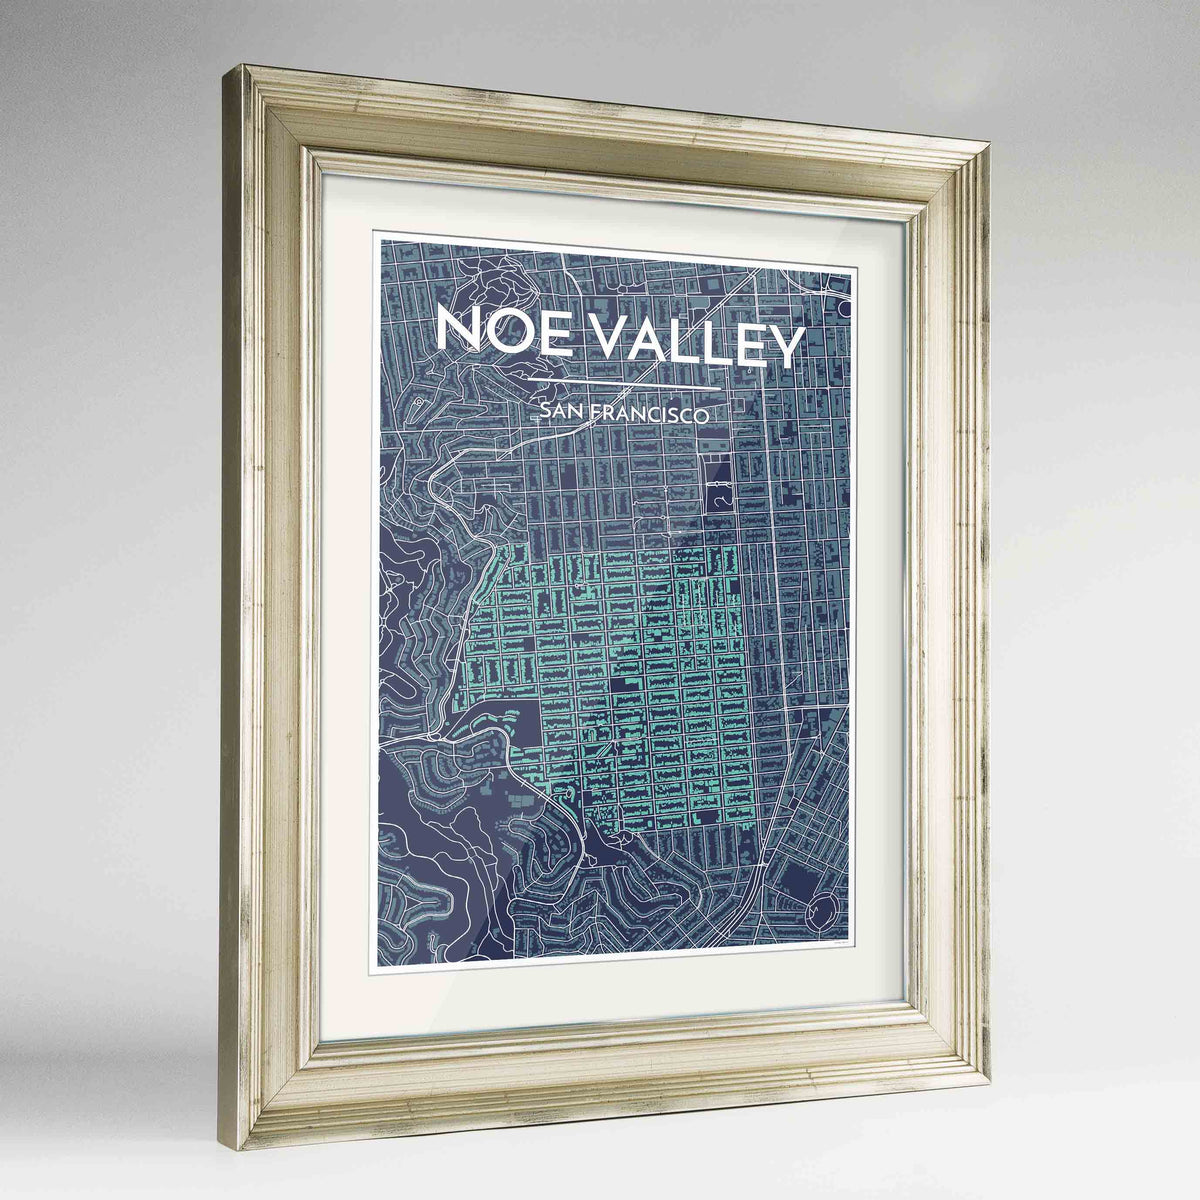 "Framed Noe Valley, San Francisco Map Art 24x36"" Champagne frame Point Two Design Group"